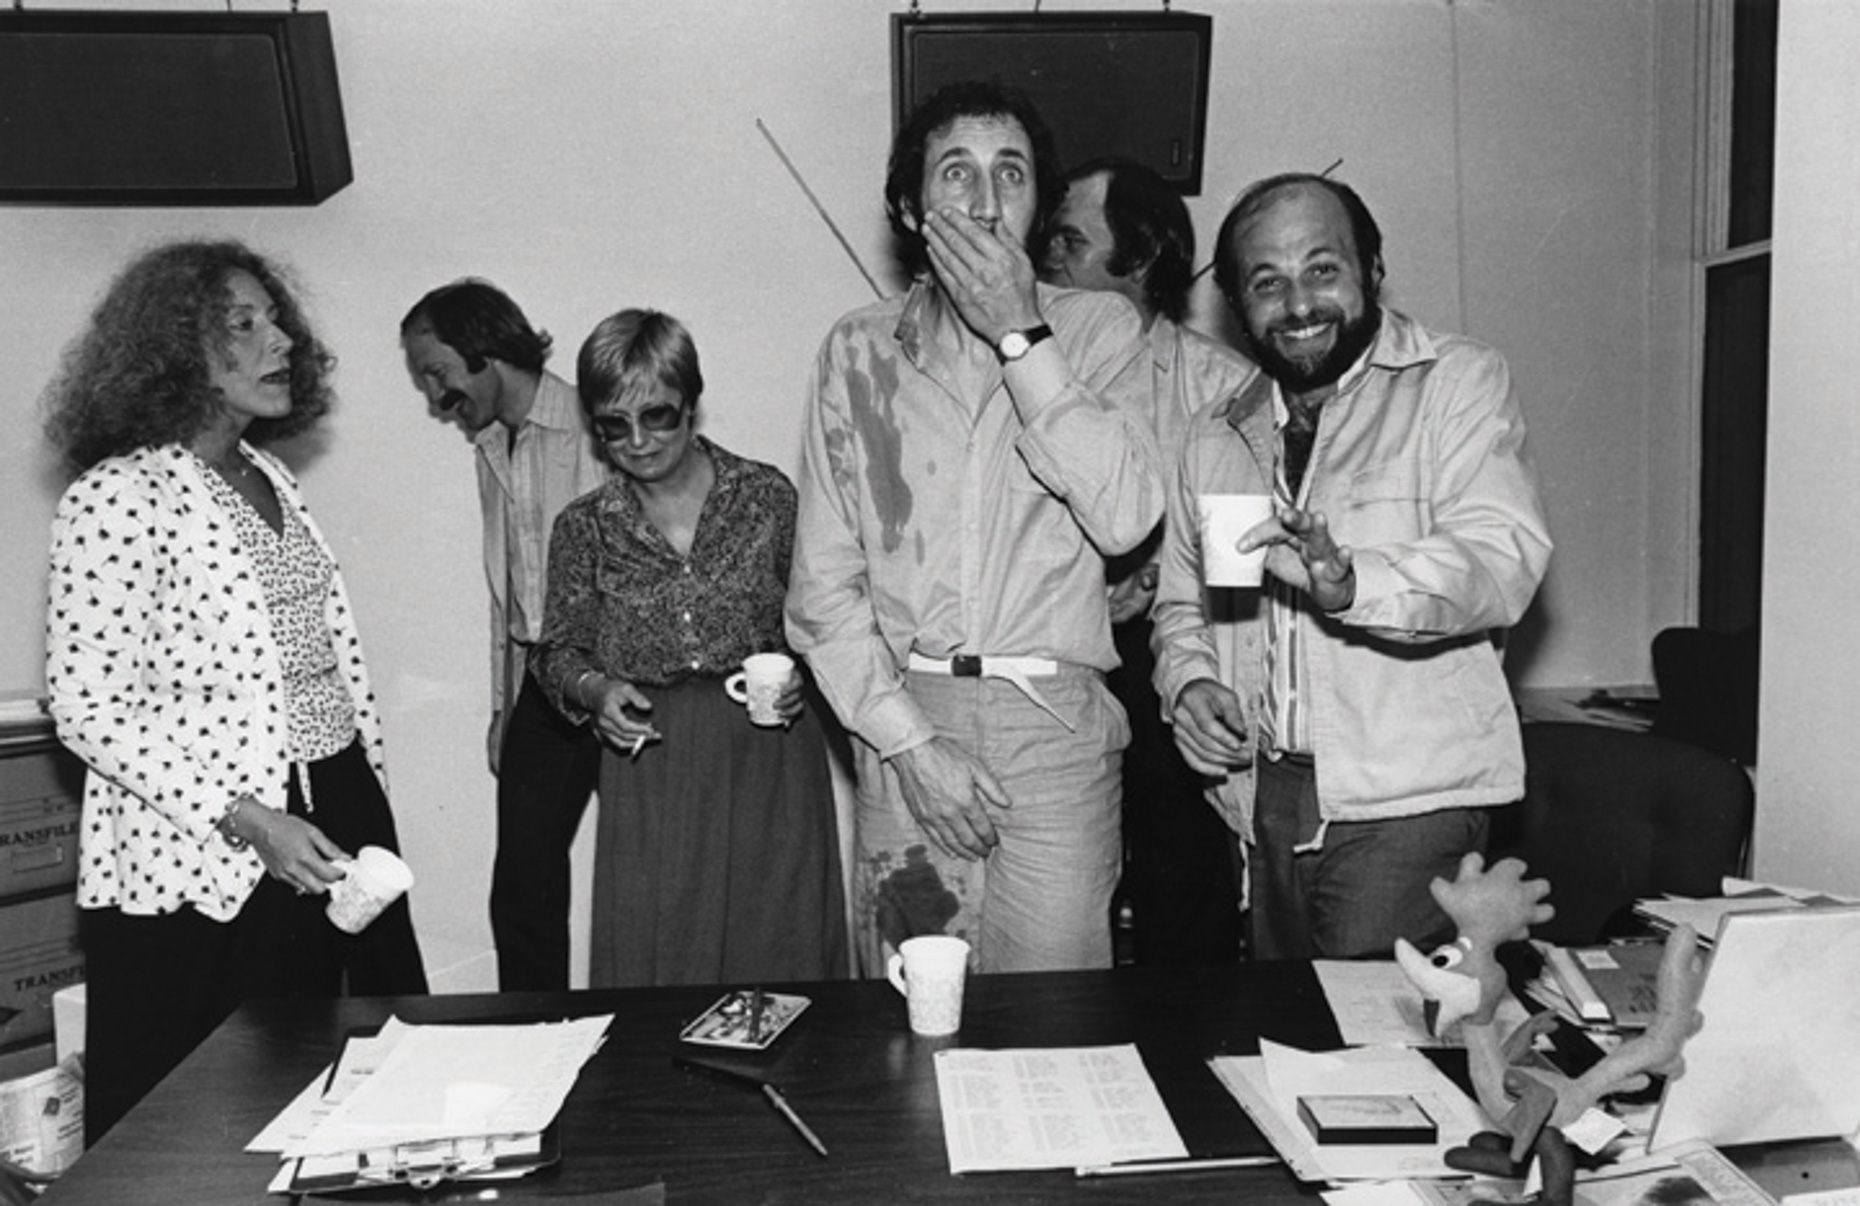 Pete Townsend & Doug Morris, Signing at ATCO Offices, 1980 [Lisa Tanner]_1